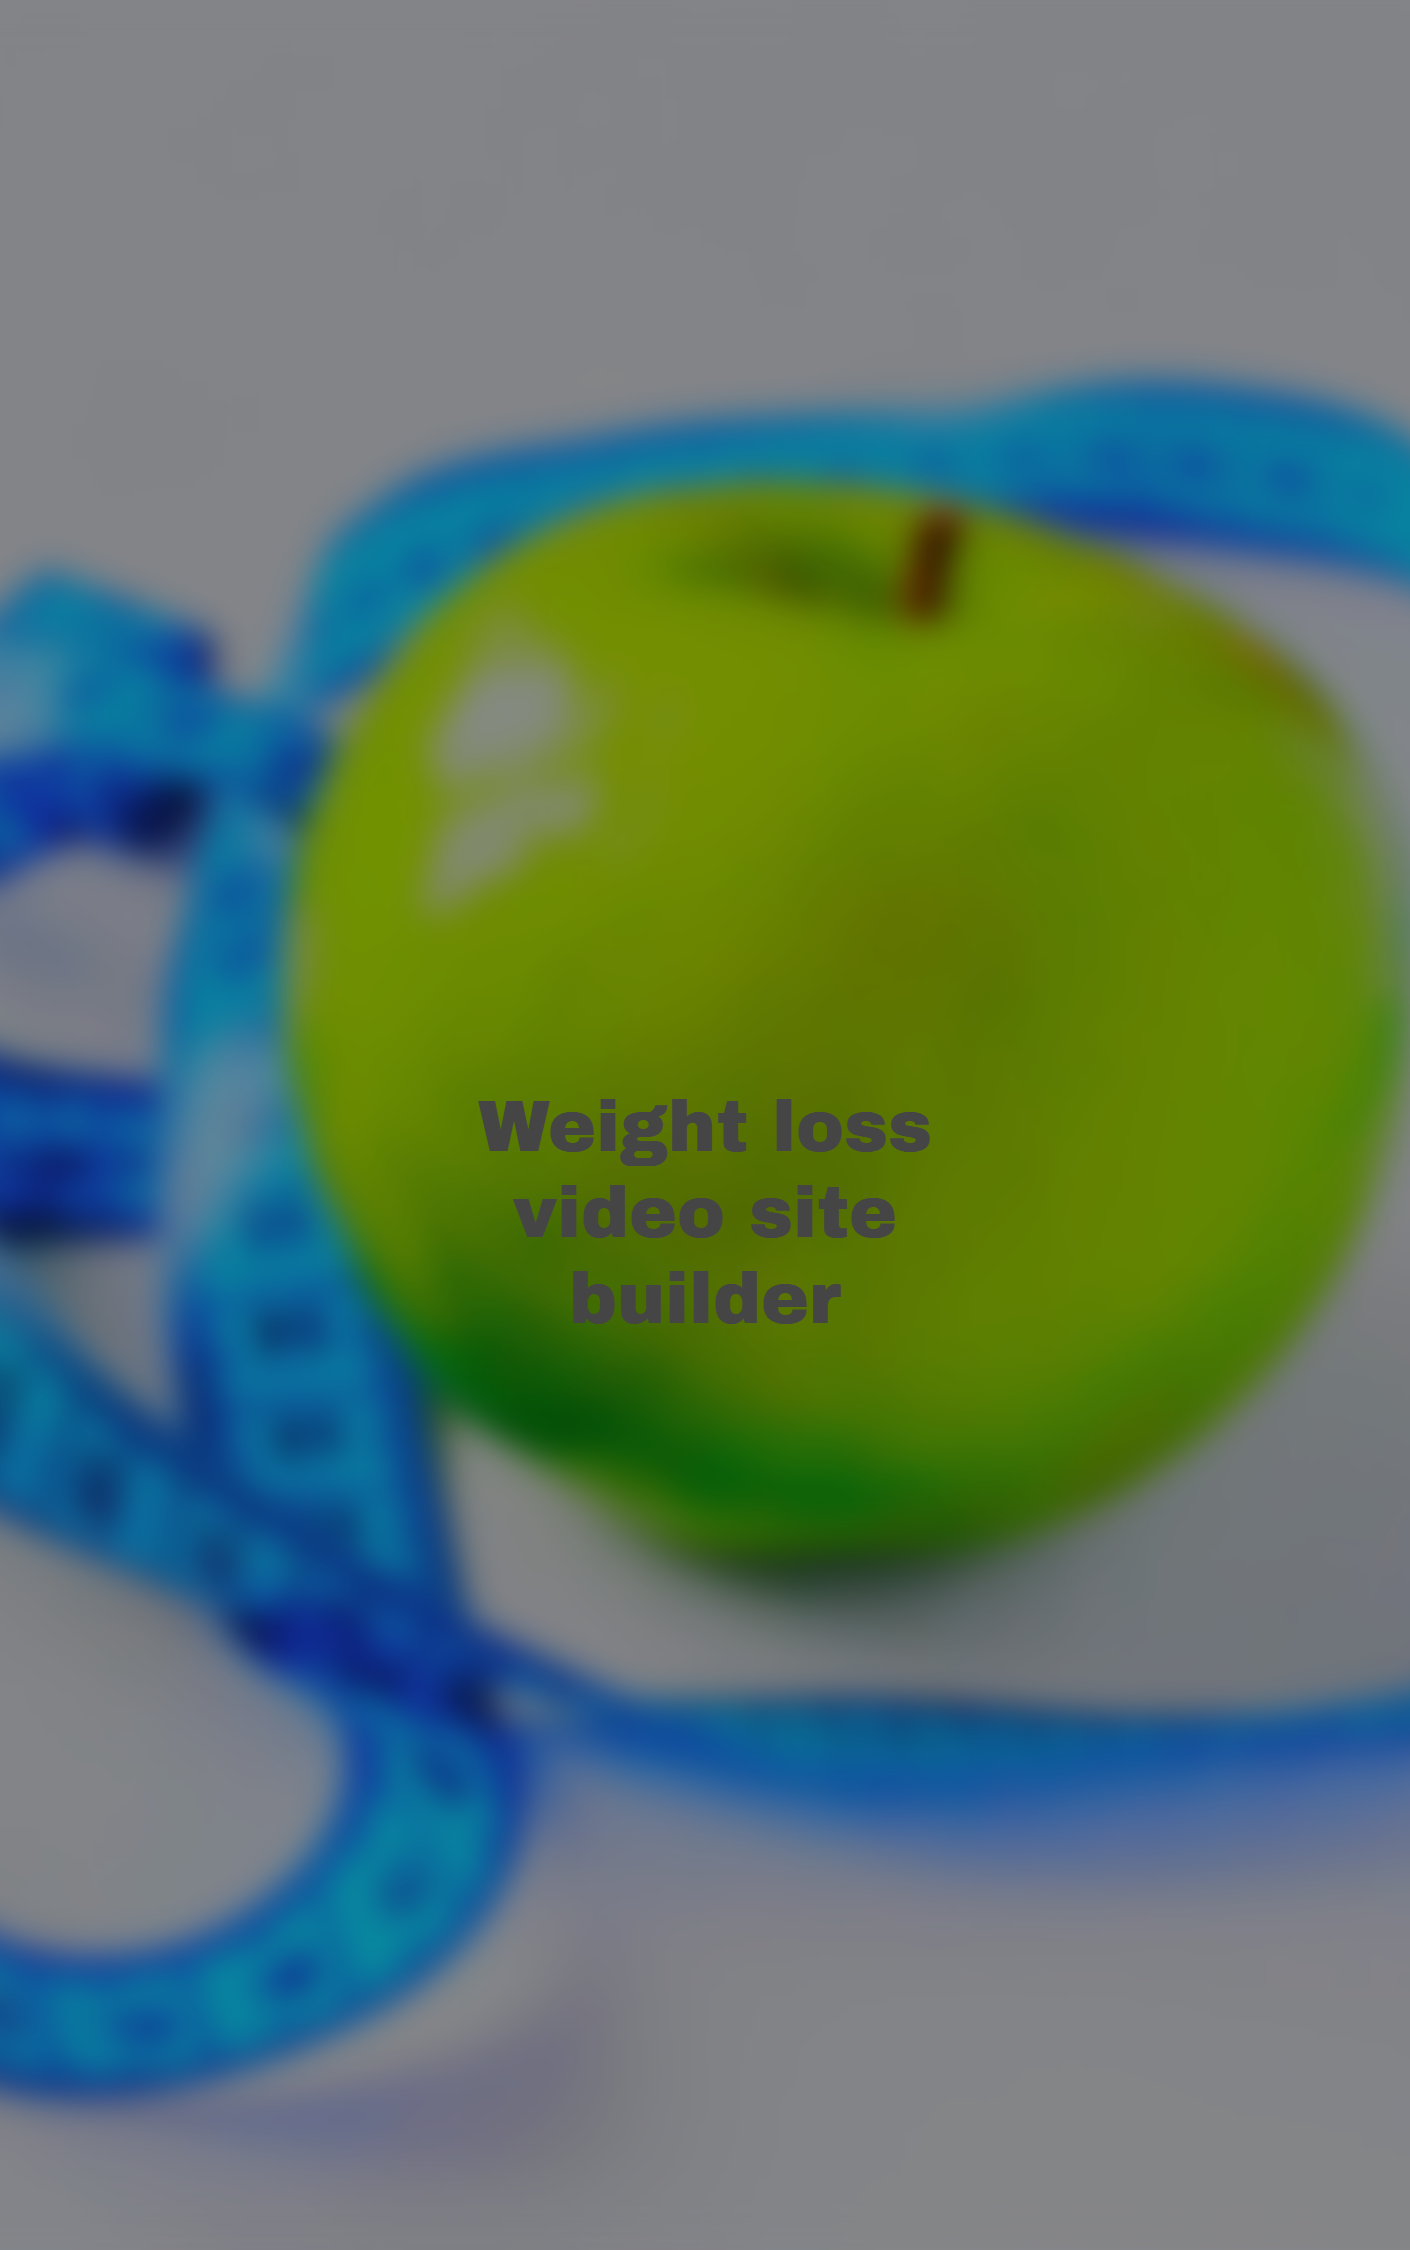 Weight loss video site builder for loss weight